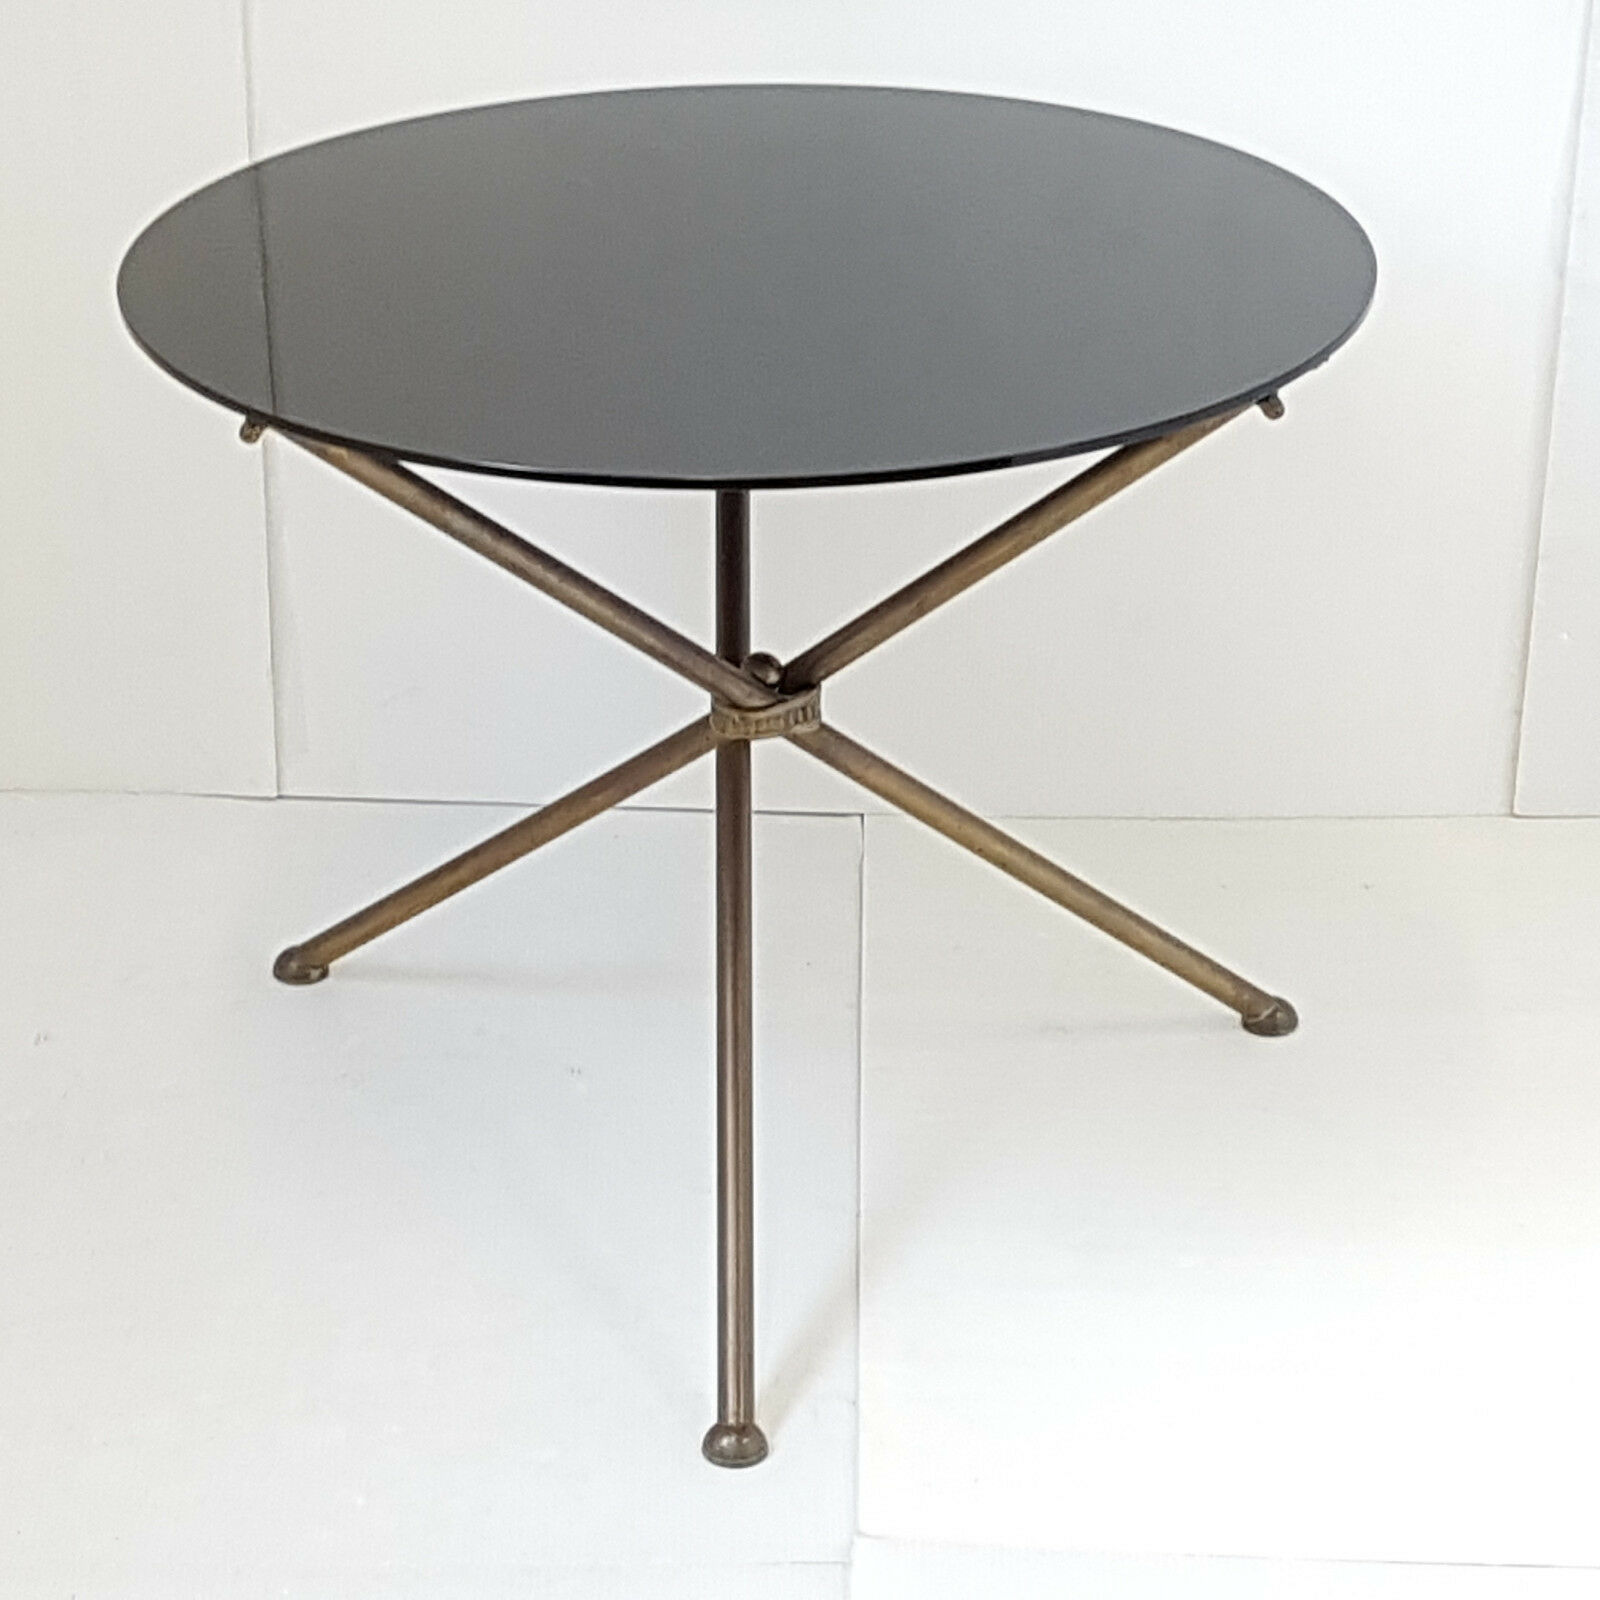 Coffee Table Side Table Round Gueridon Vintage 50s In Brass Glass Vinterior